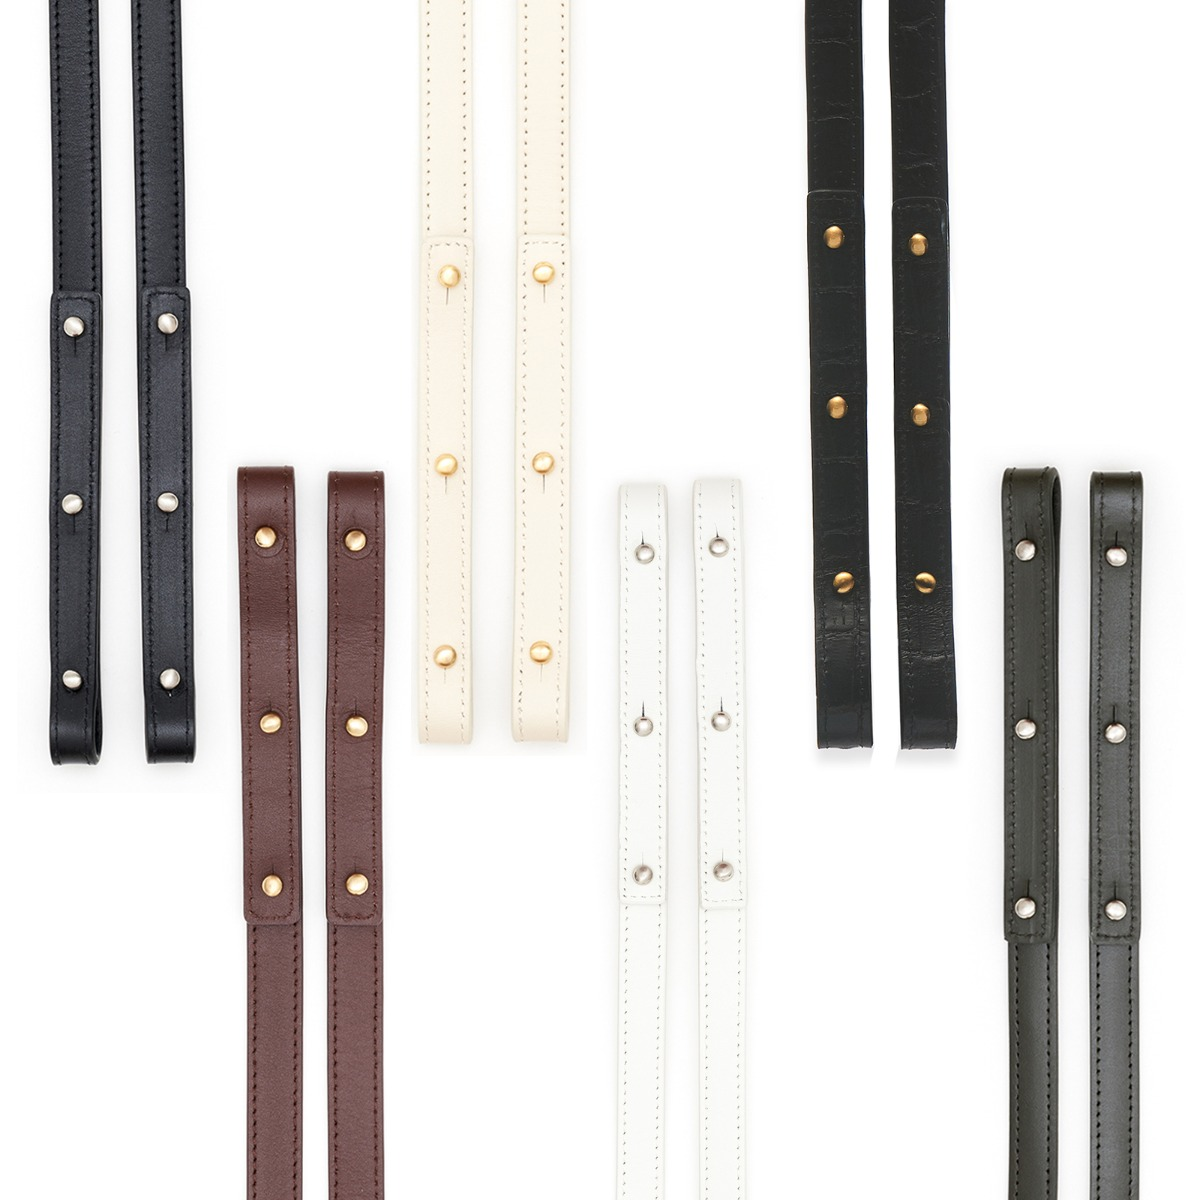 BANGLERING STRAP [6 COLORS] / [CREAM] 10/19일 순차 출고 예정